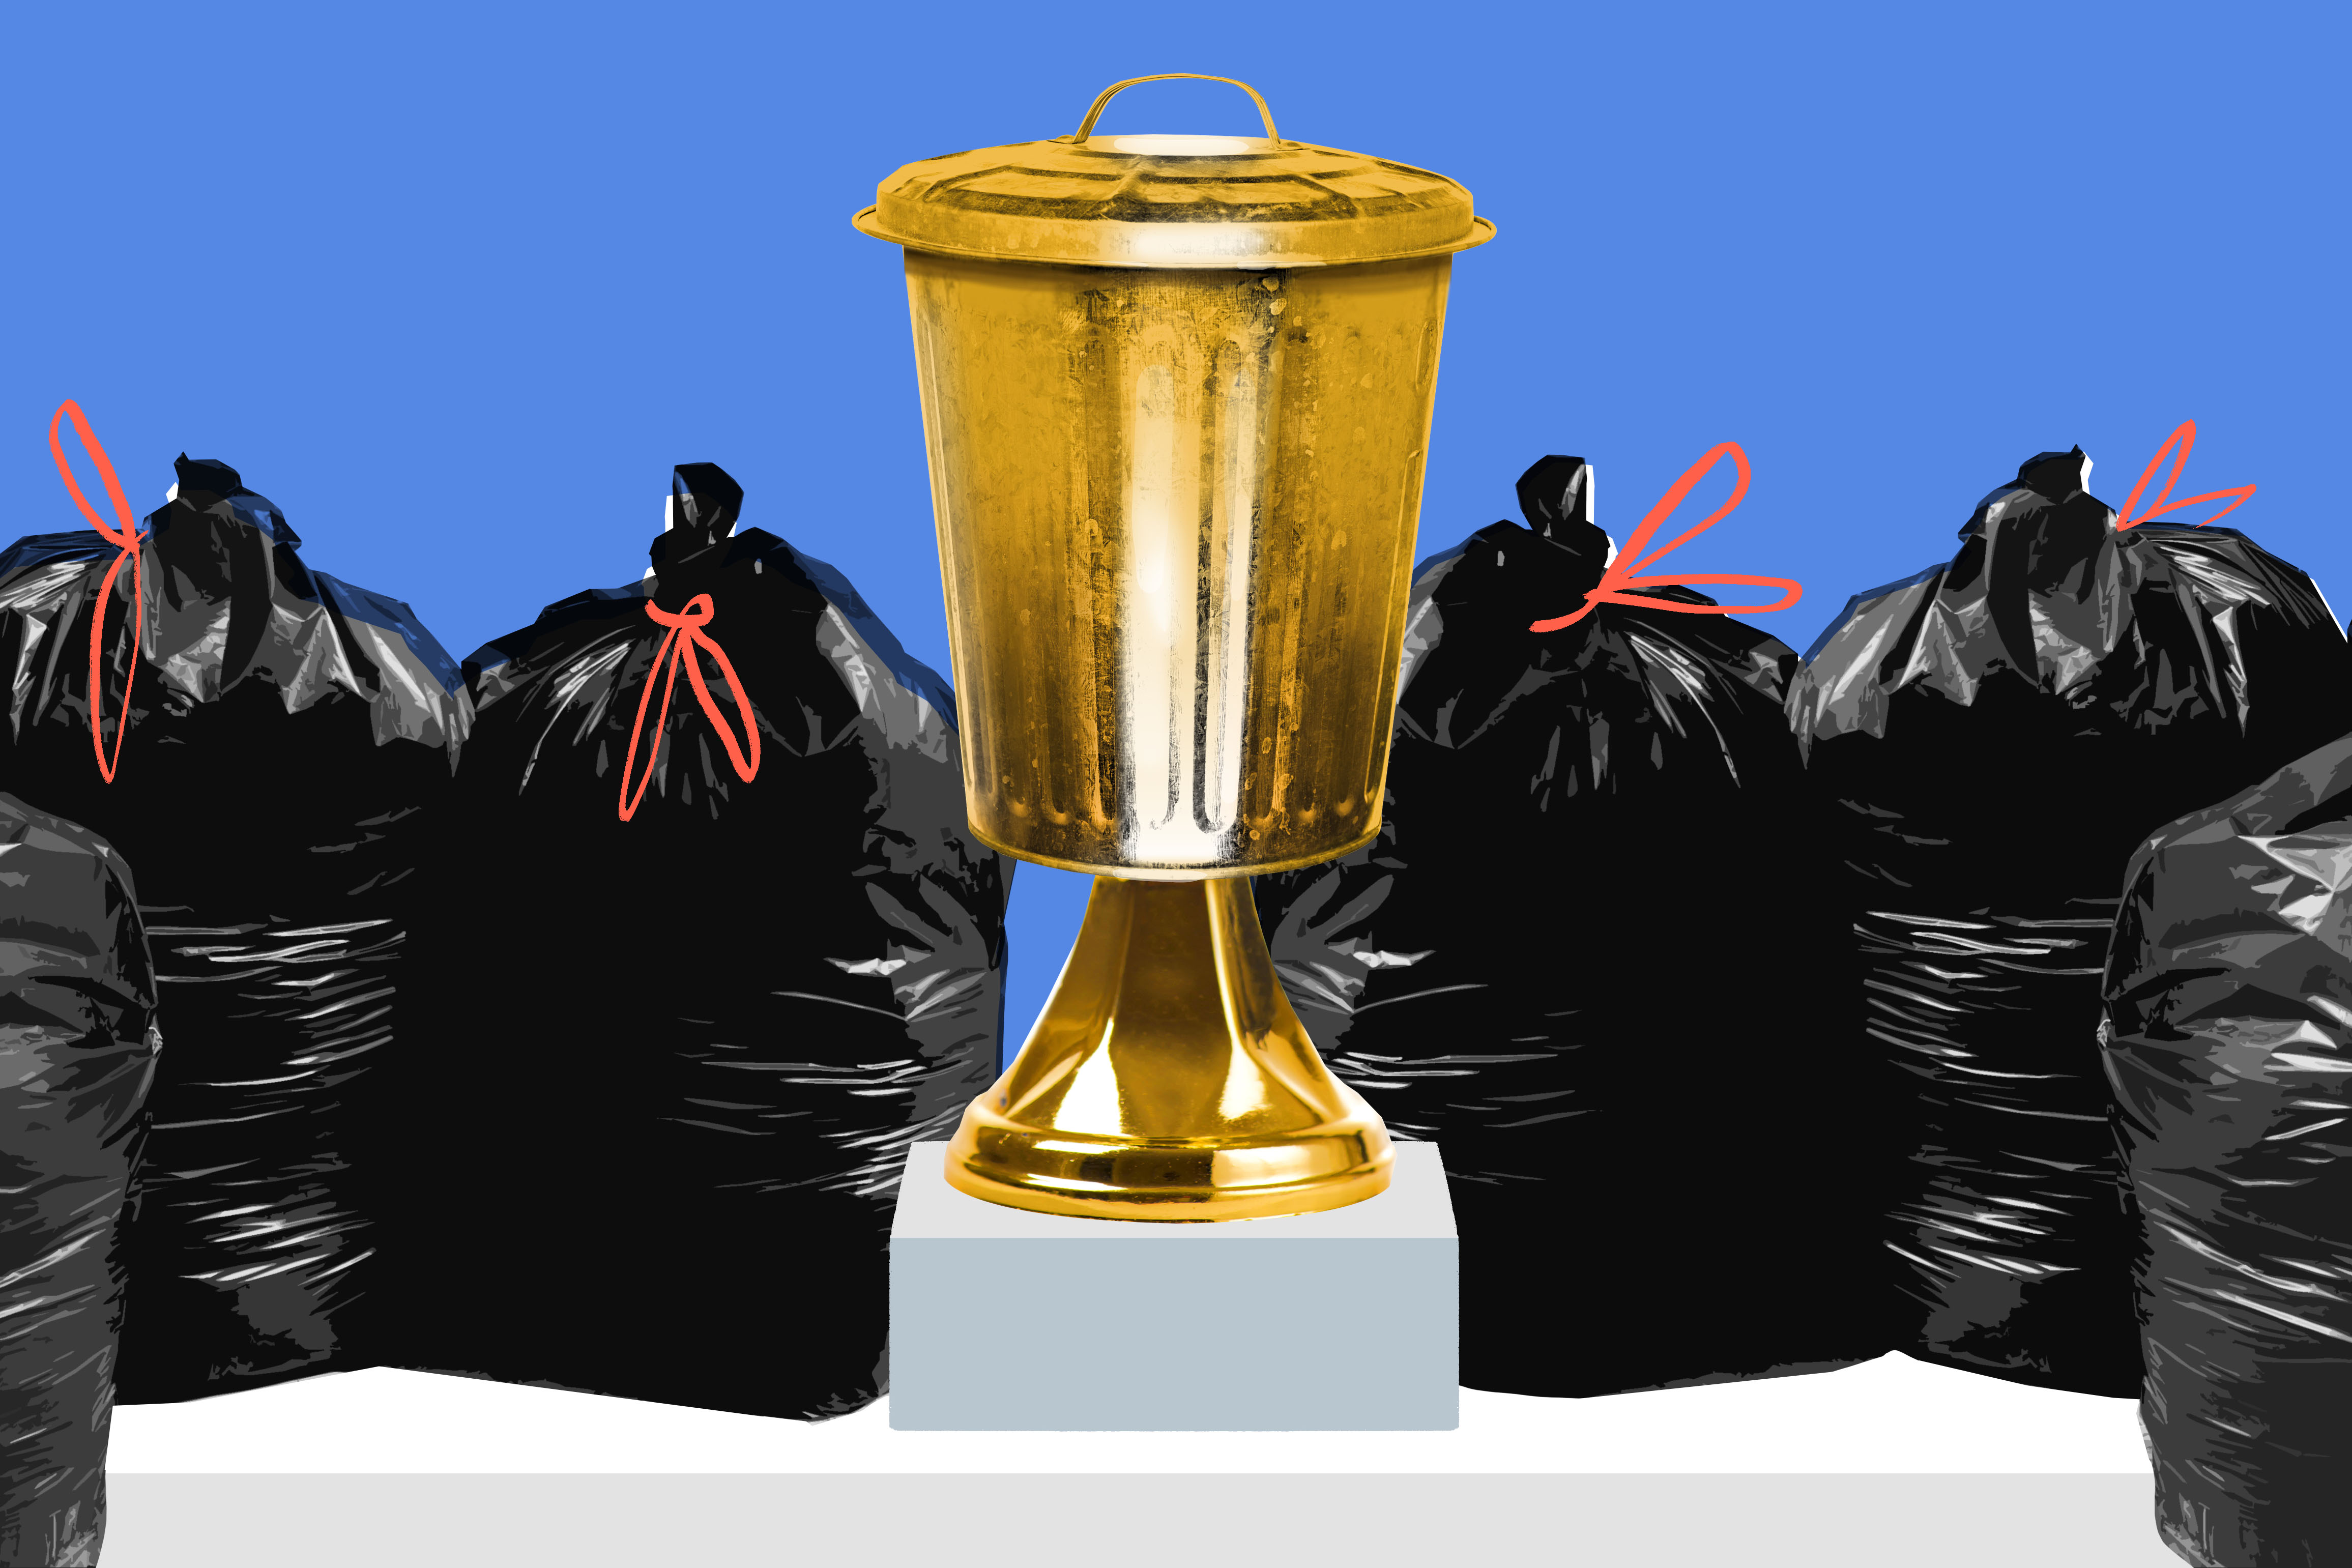 Garbage bags of trash are seen piled up around a trash can that's painted gold to look like a trophy.